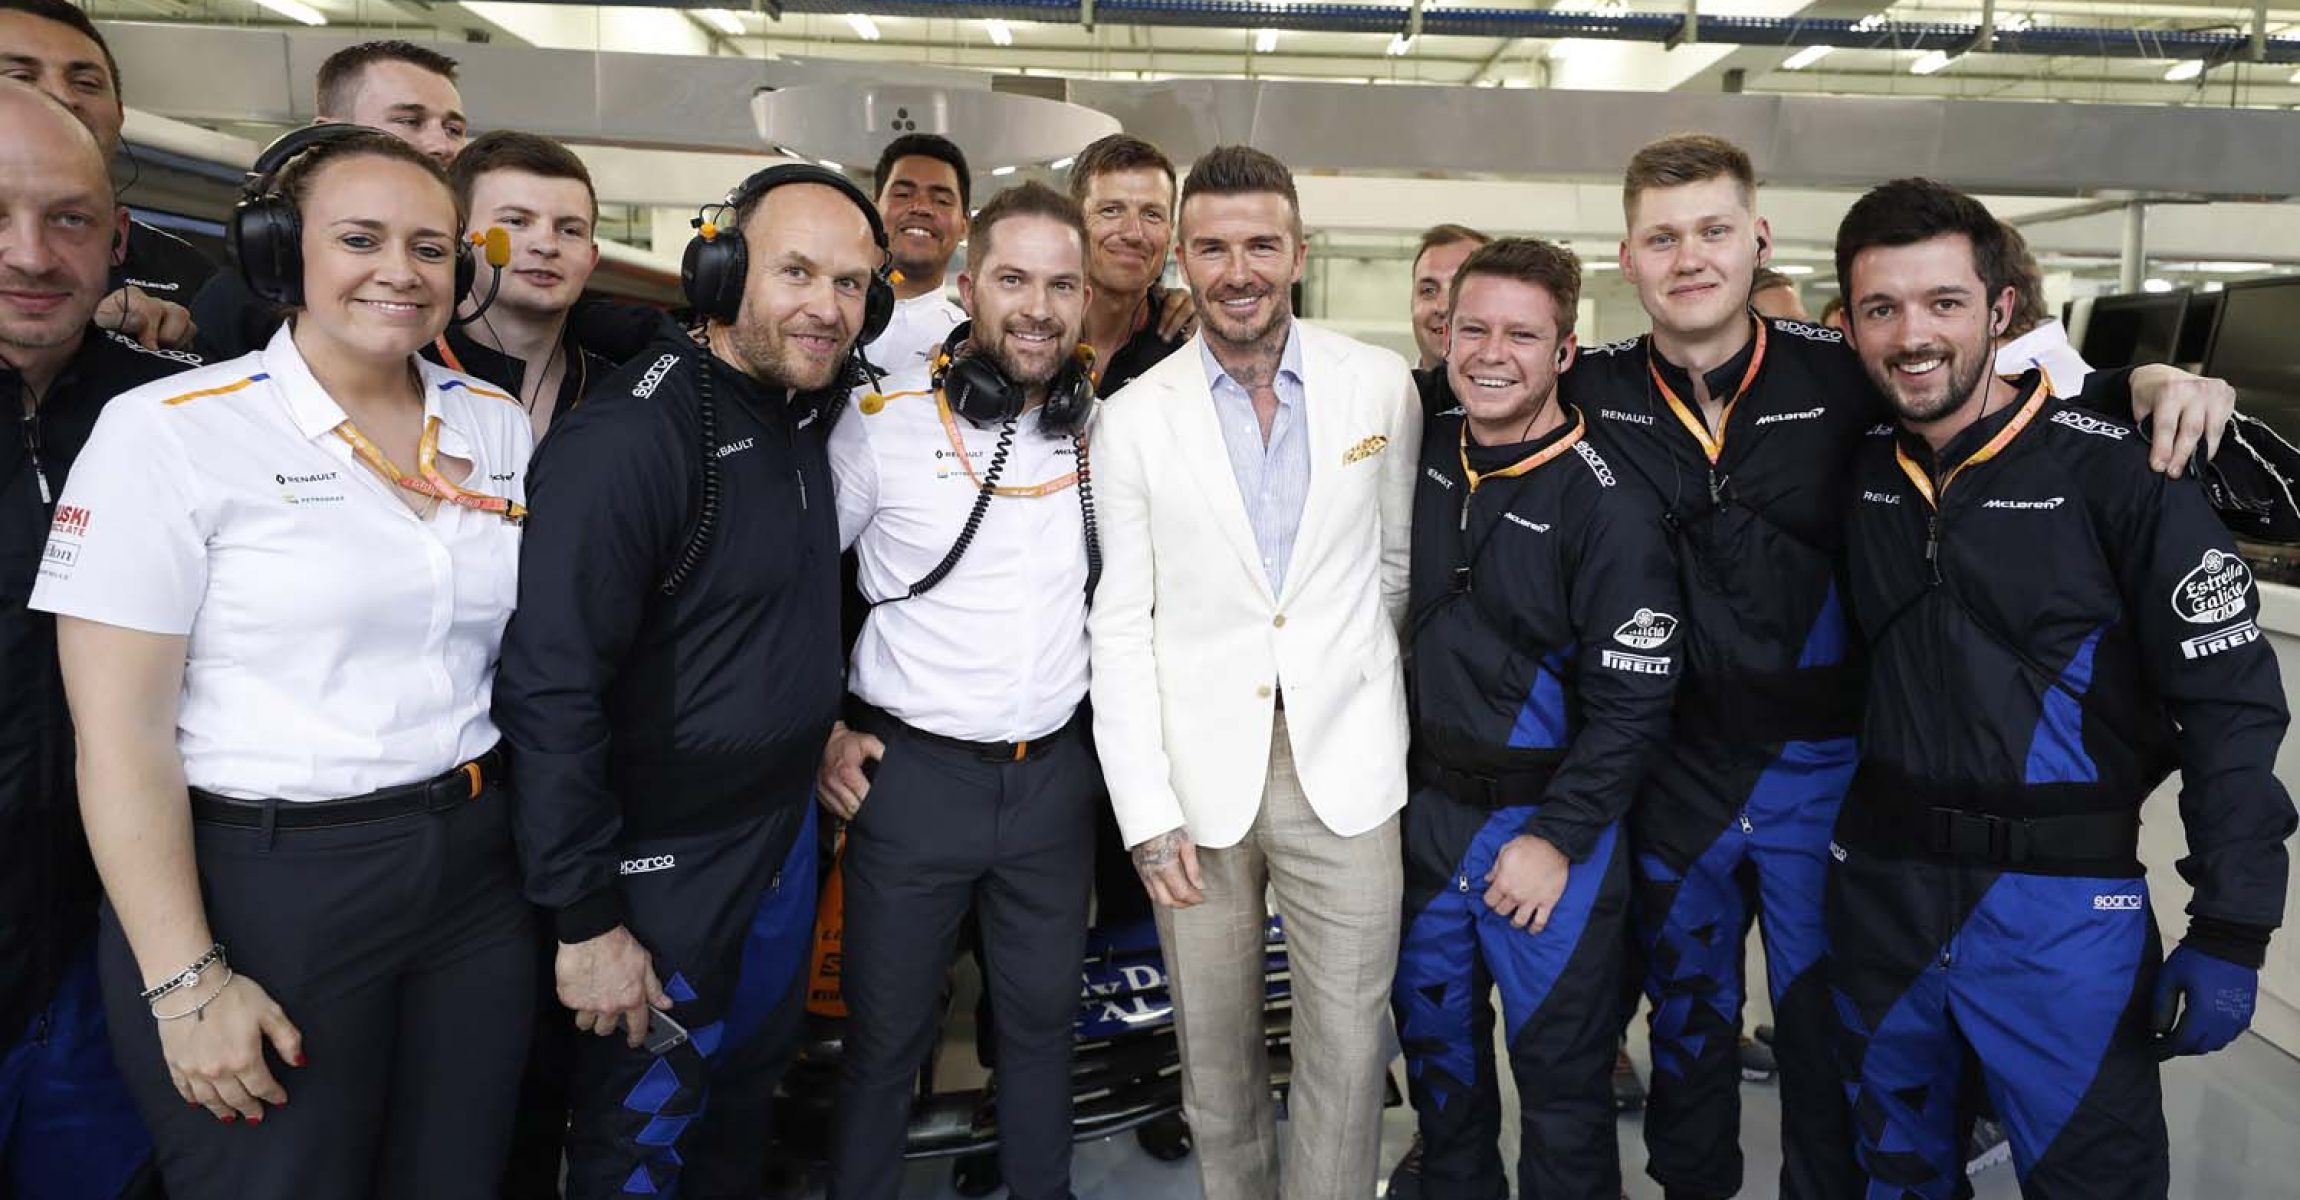 Footballer David Beckham meets the team in the garage